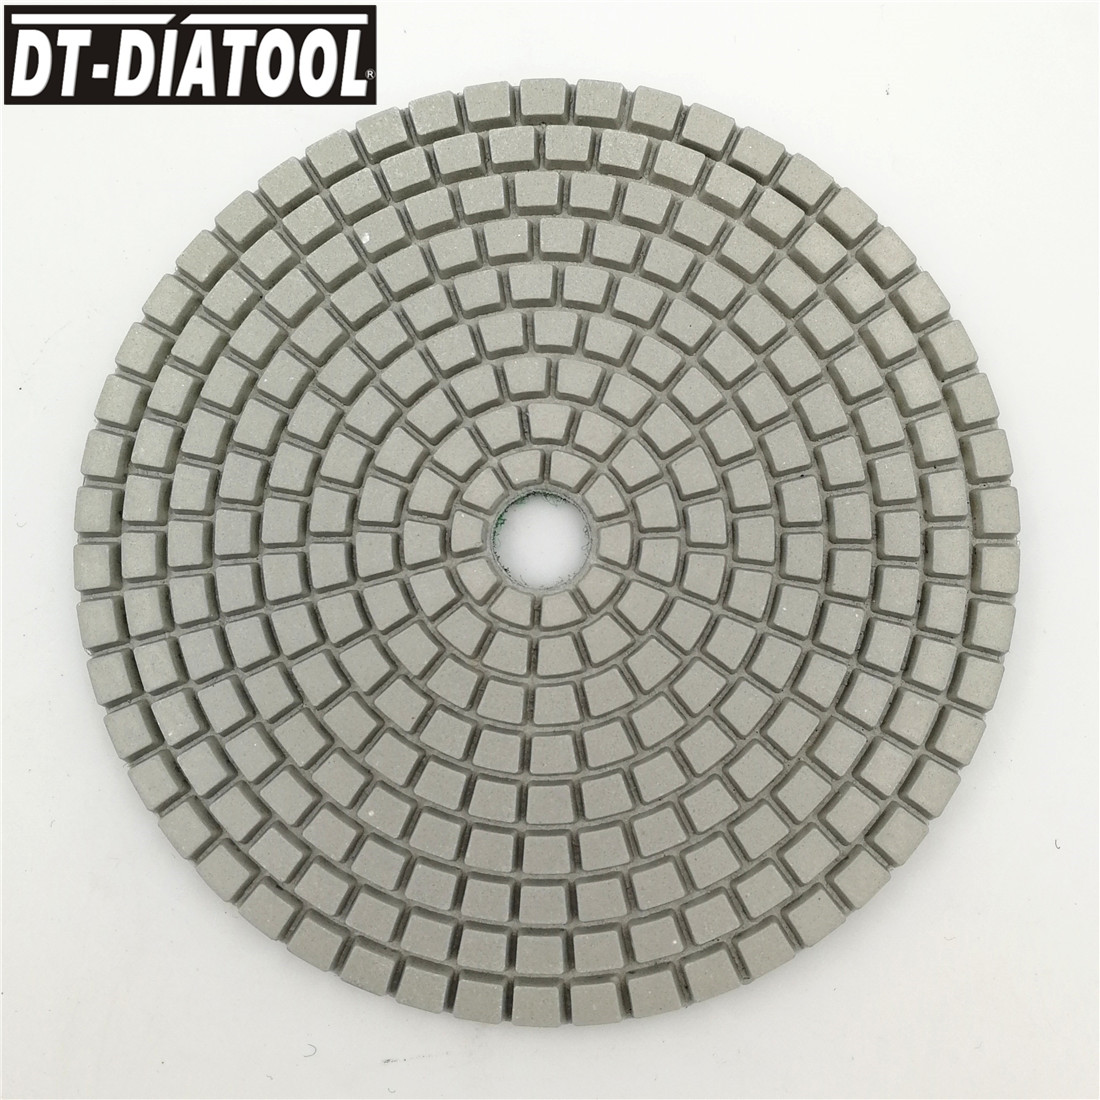 Us 31 24 27 Off Dt Diatool 10pcs 4 Diamond Resin Bond Sanding Discs 800 Terrazzo Floor Angle Grinder 100mm Concrete Polishing Pads Wet Or Dry In